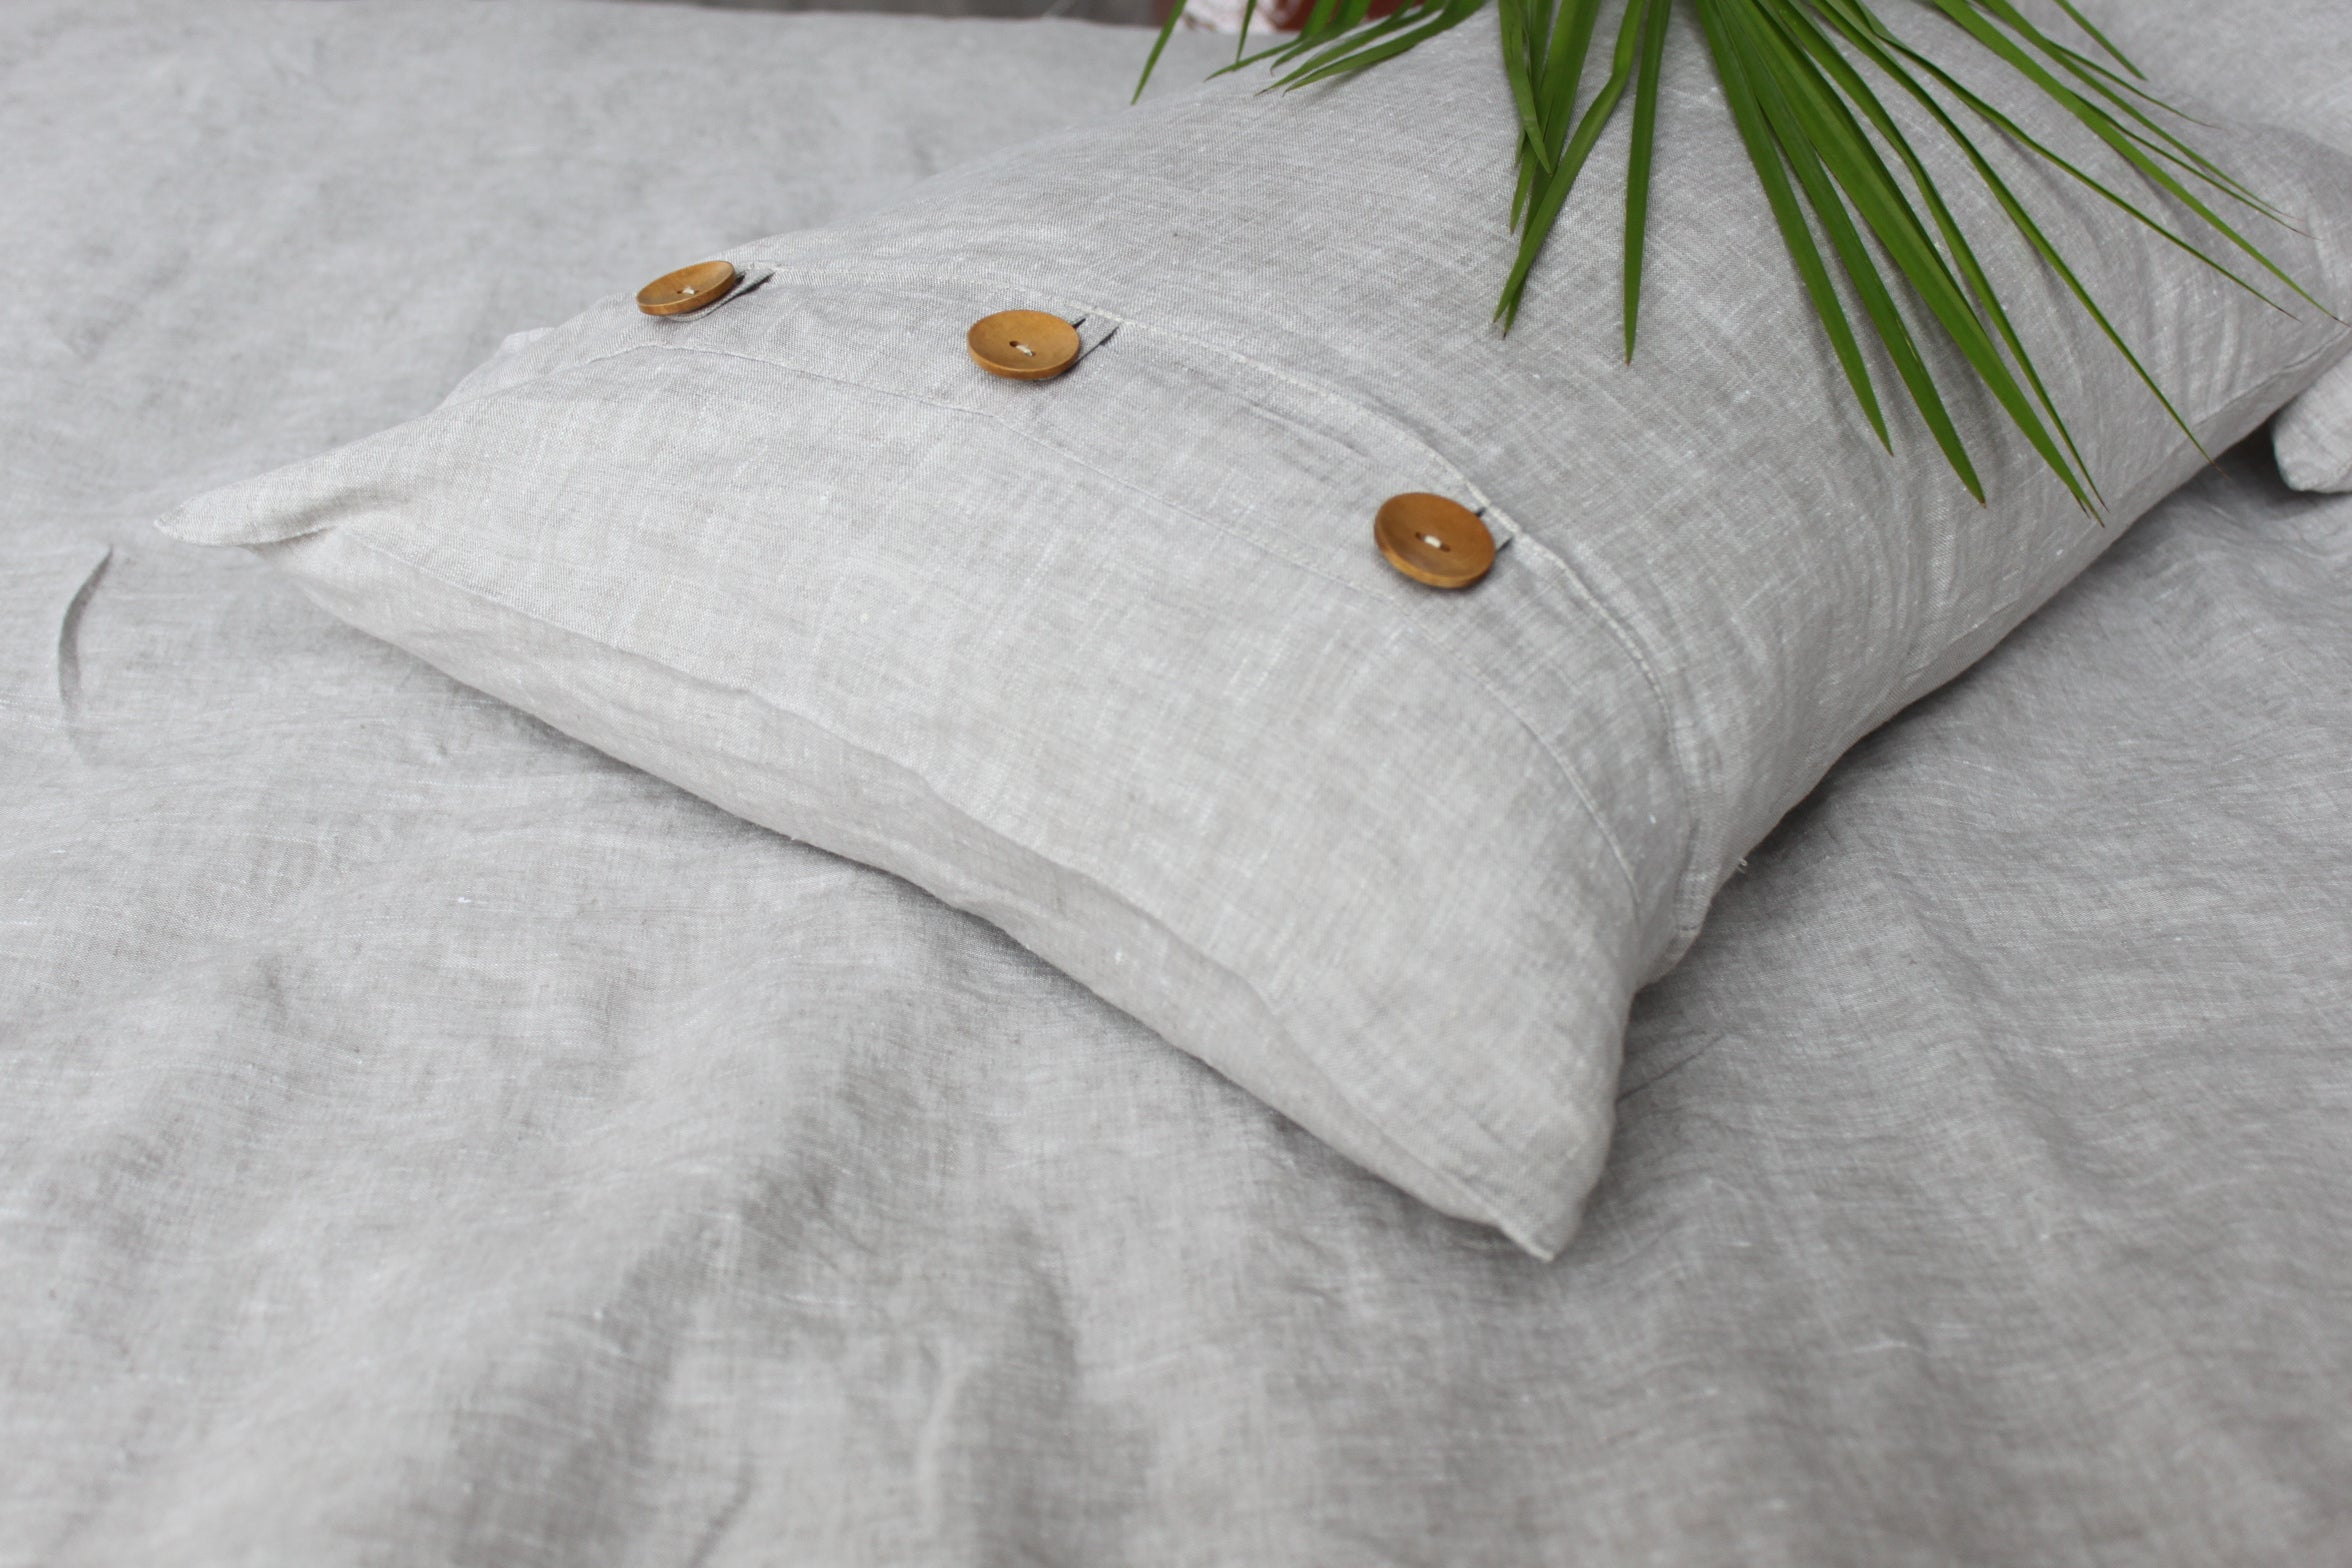 Cottage Chic Natural Linen Pillow Sham with Side Wooden Buttons Decor - Standard, Queen, King, Euro Sizes